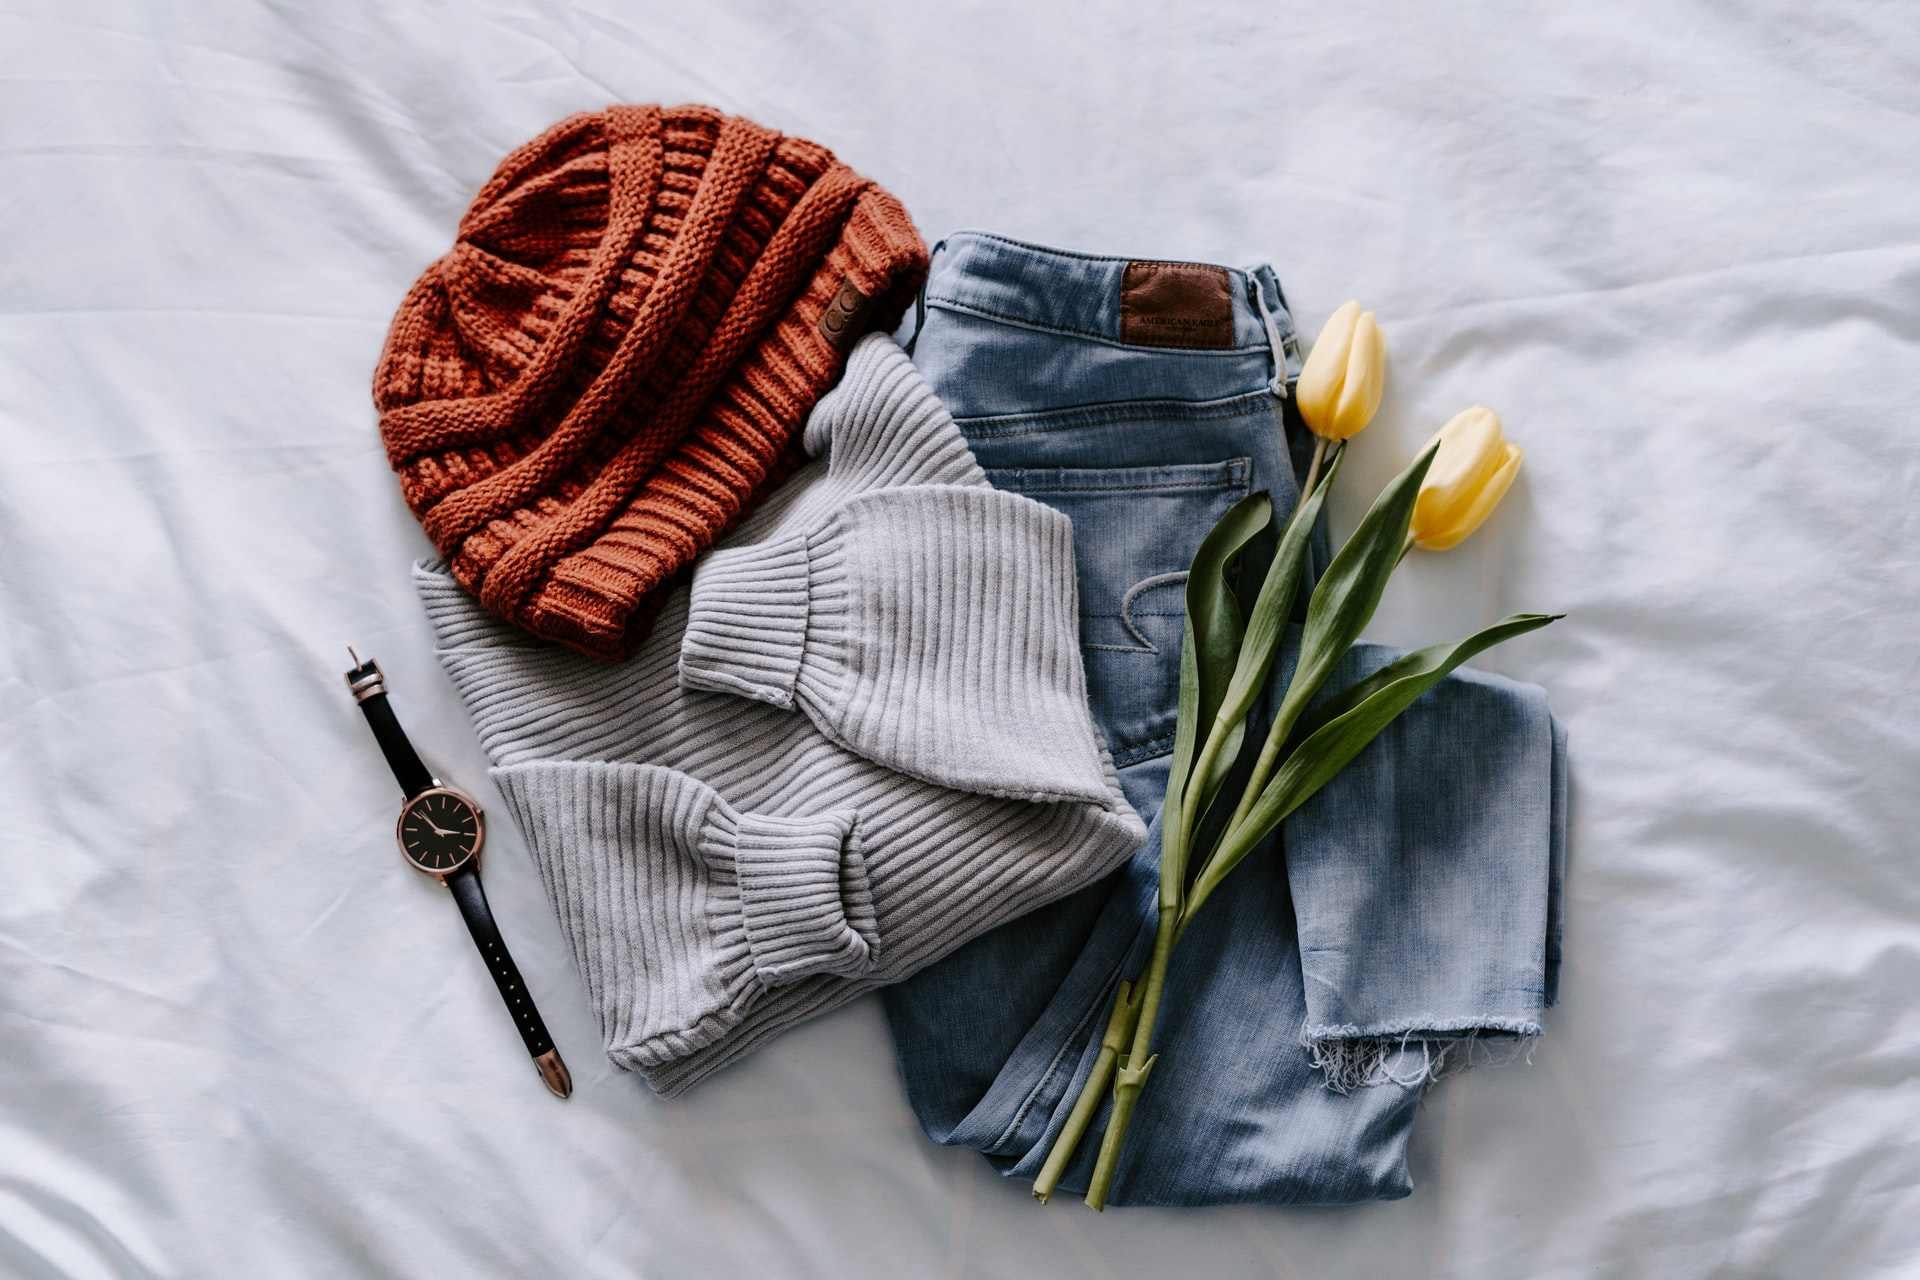 orange-knit-beanie-grey-jumper-blue-pair-of-jeans-and-watch-on-white-bed-travel-capsule-wardrobe